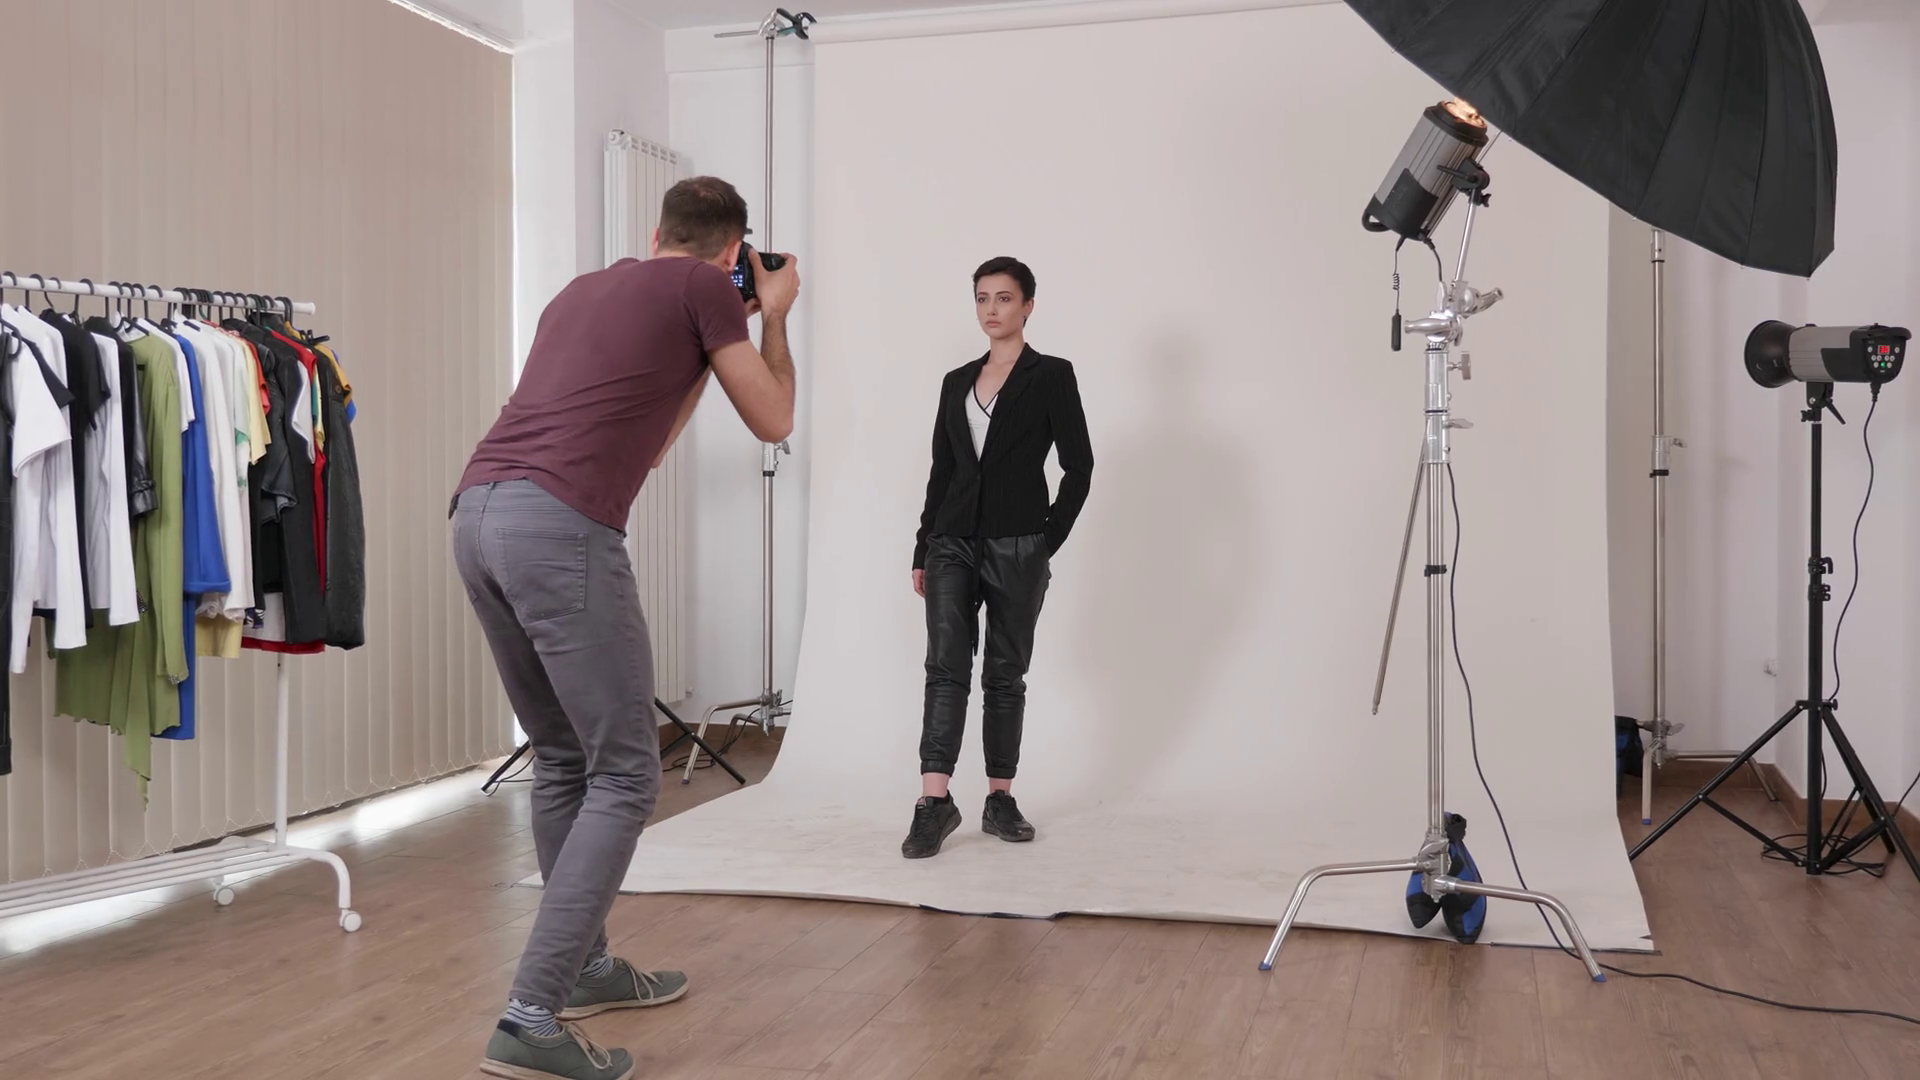 Photographer Taking Pictures Of A Professional Model Backstage Of Fashion Photoshoot In Studio Over A White Background Stock Video Footage Storyblocks